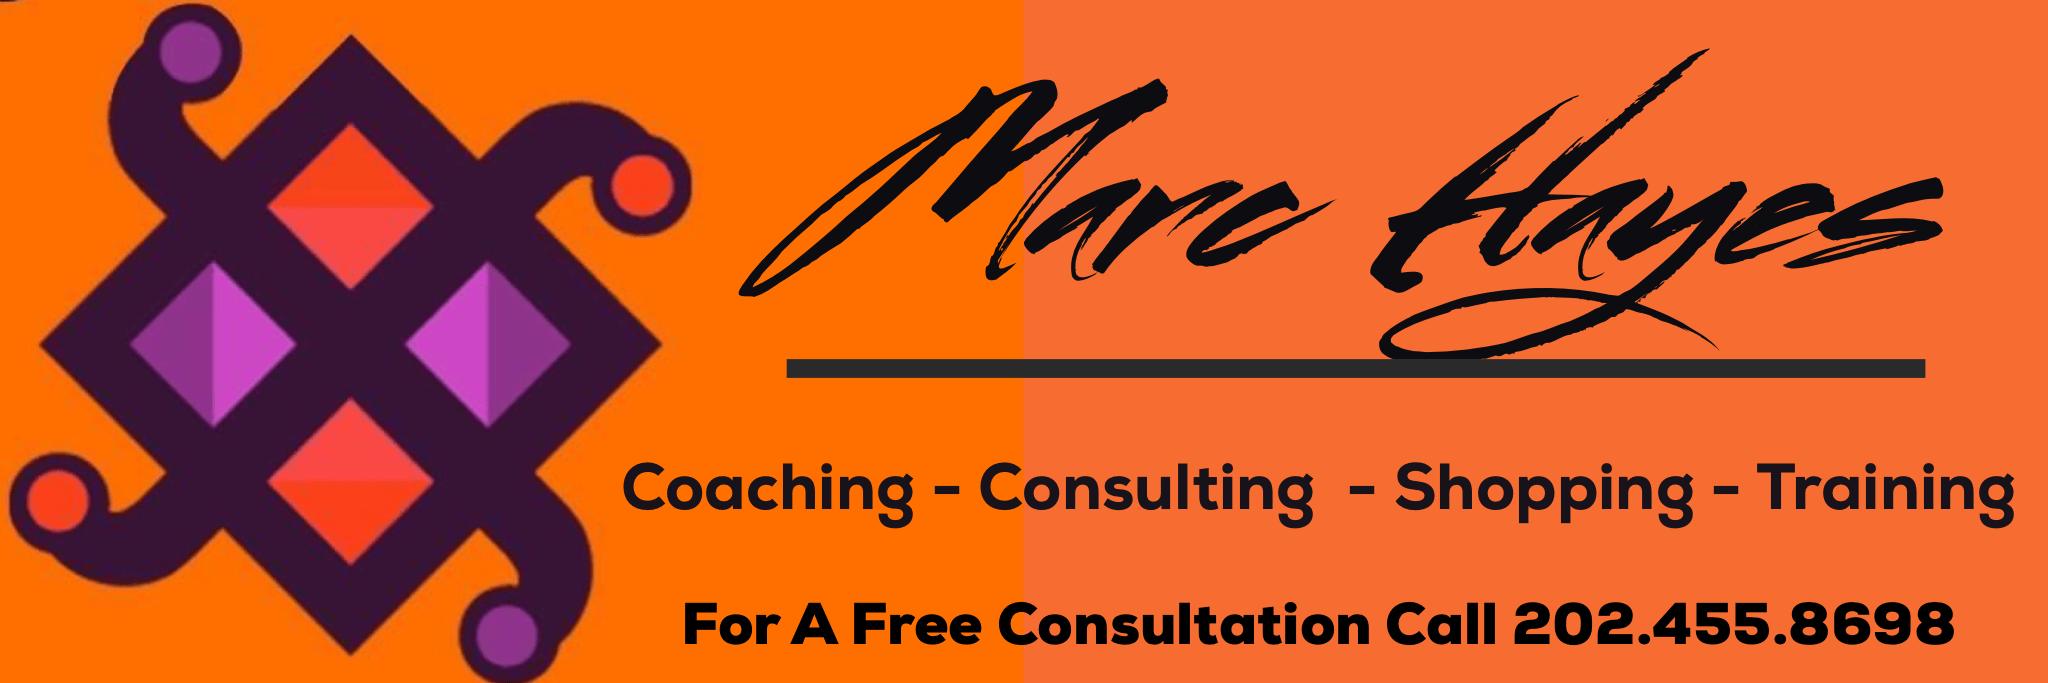 Marc Hayes – Clothing – Coaching – Consulting – Training